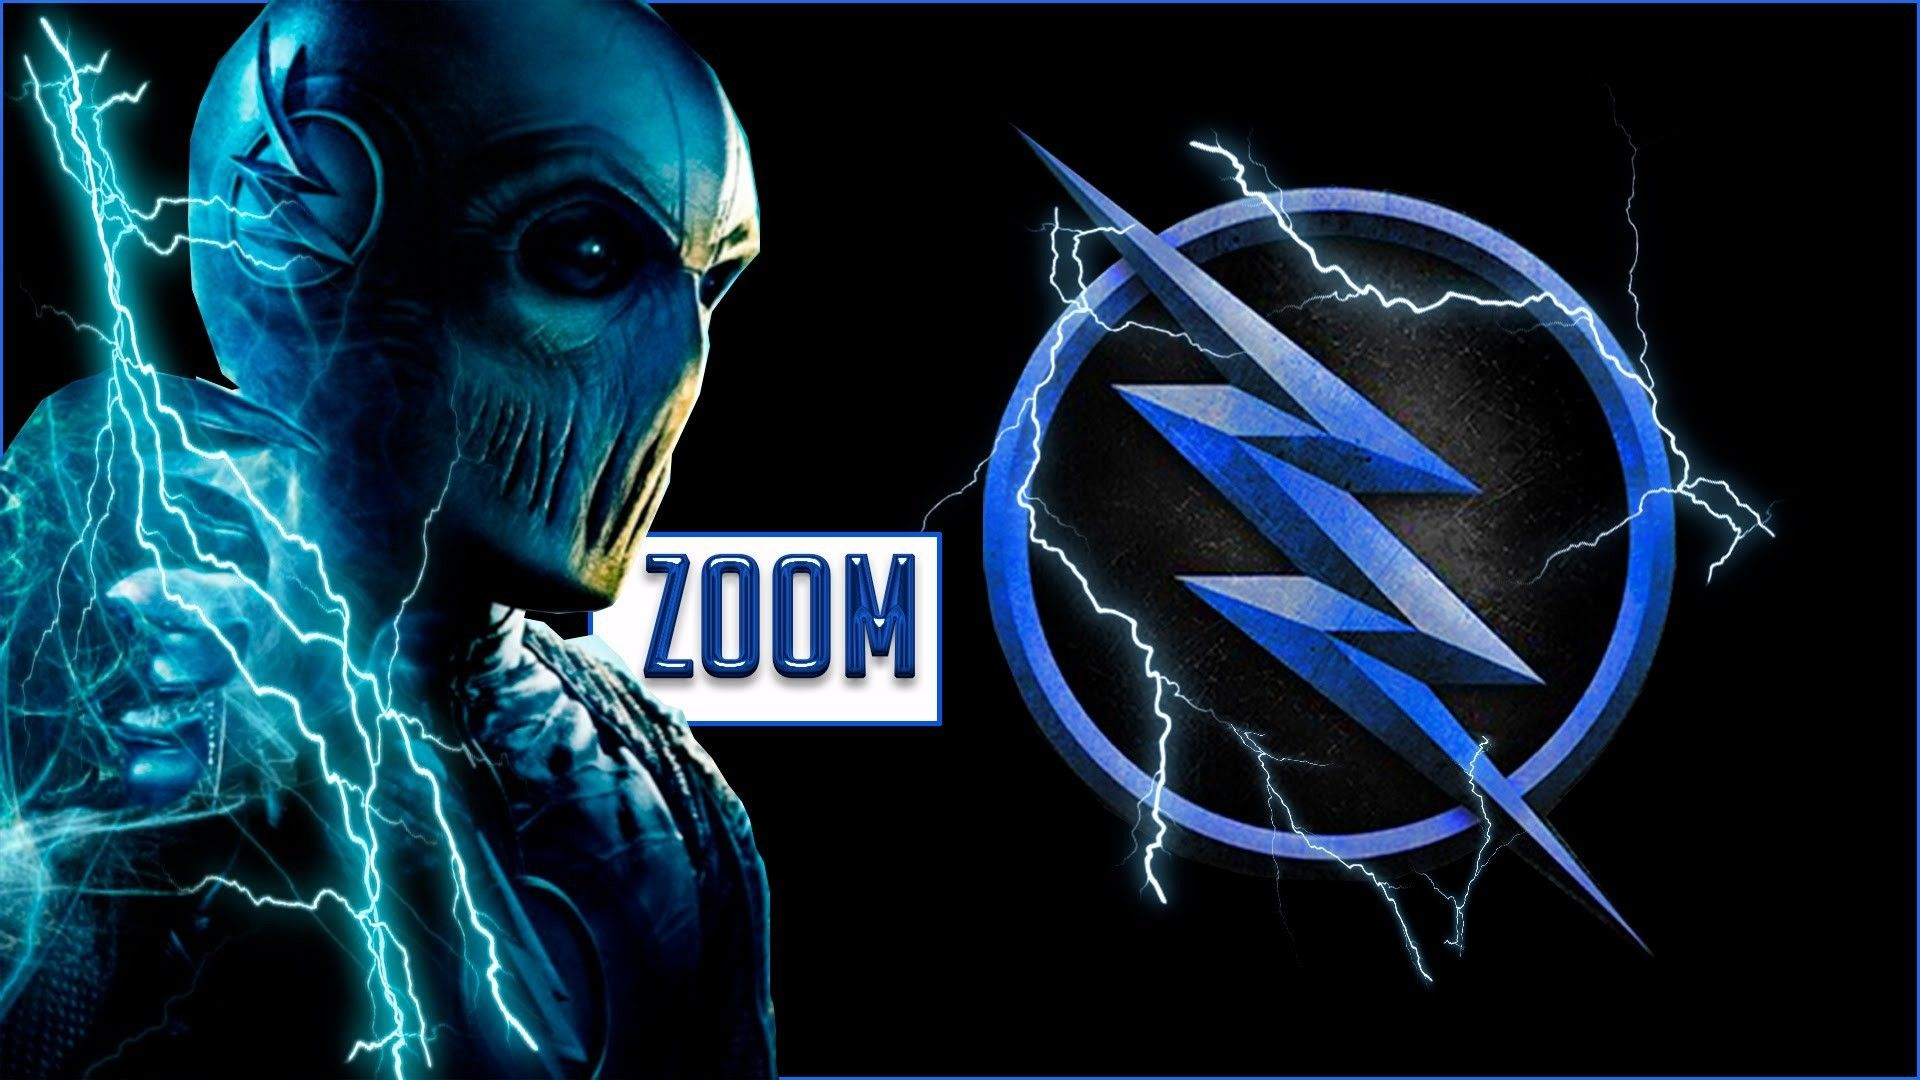 The Flash Zoom 4K Wallpapers  Top Free The Flash Zoom 4K